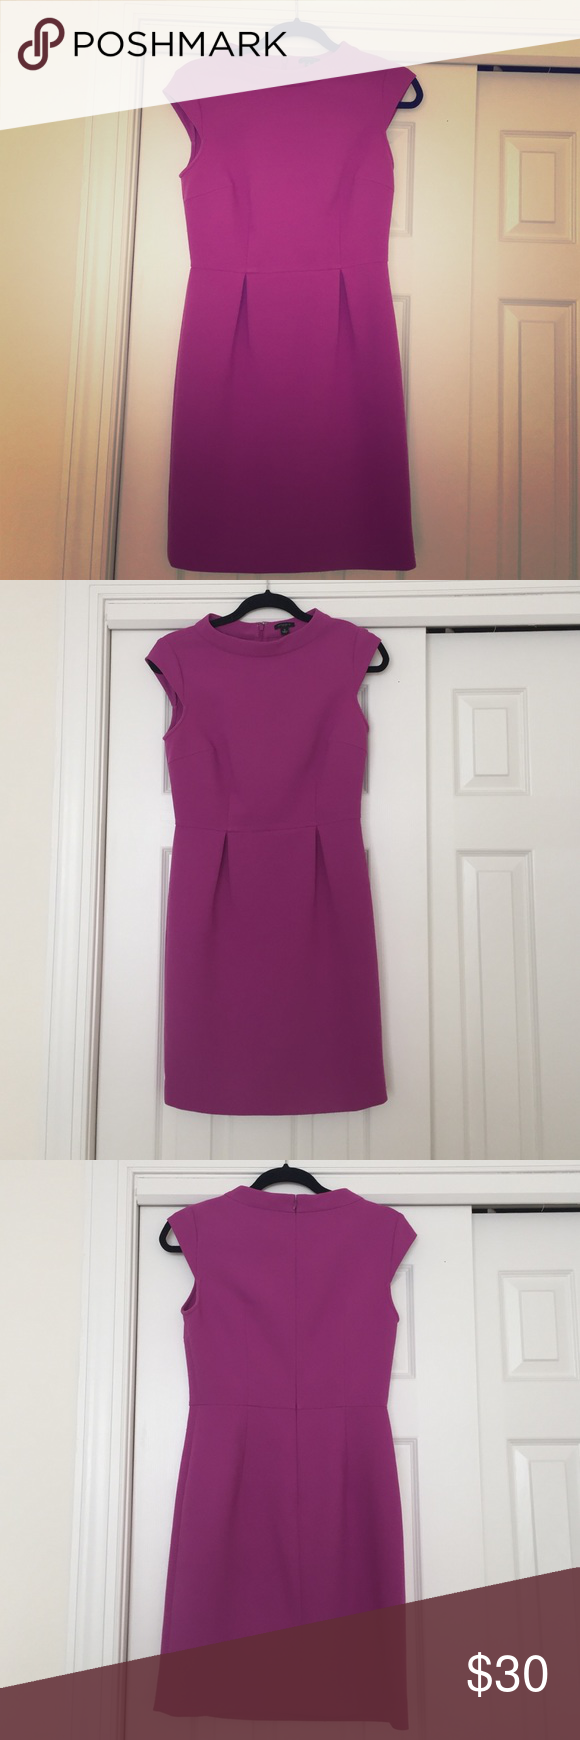 Purple dress Ann Taylor professional dress. In good condition, has been worn generously. Last picture shows quality and condition of material. Wear all year long to work or cocktail parties! Ann Taylor Dresses